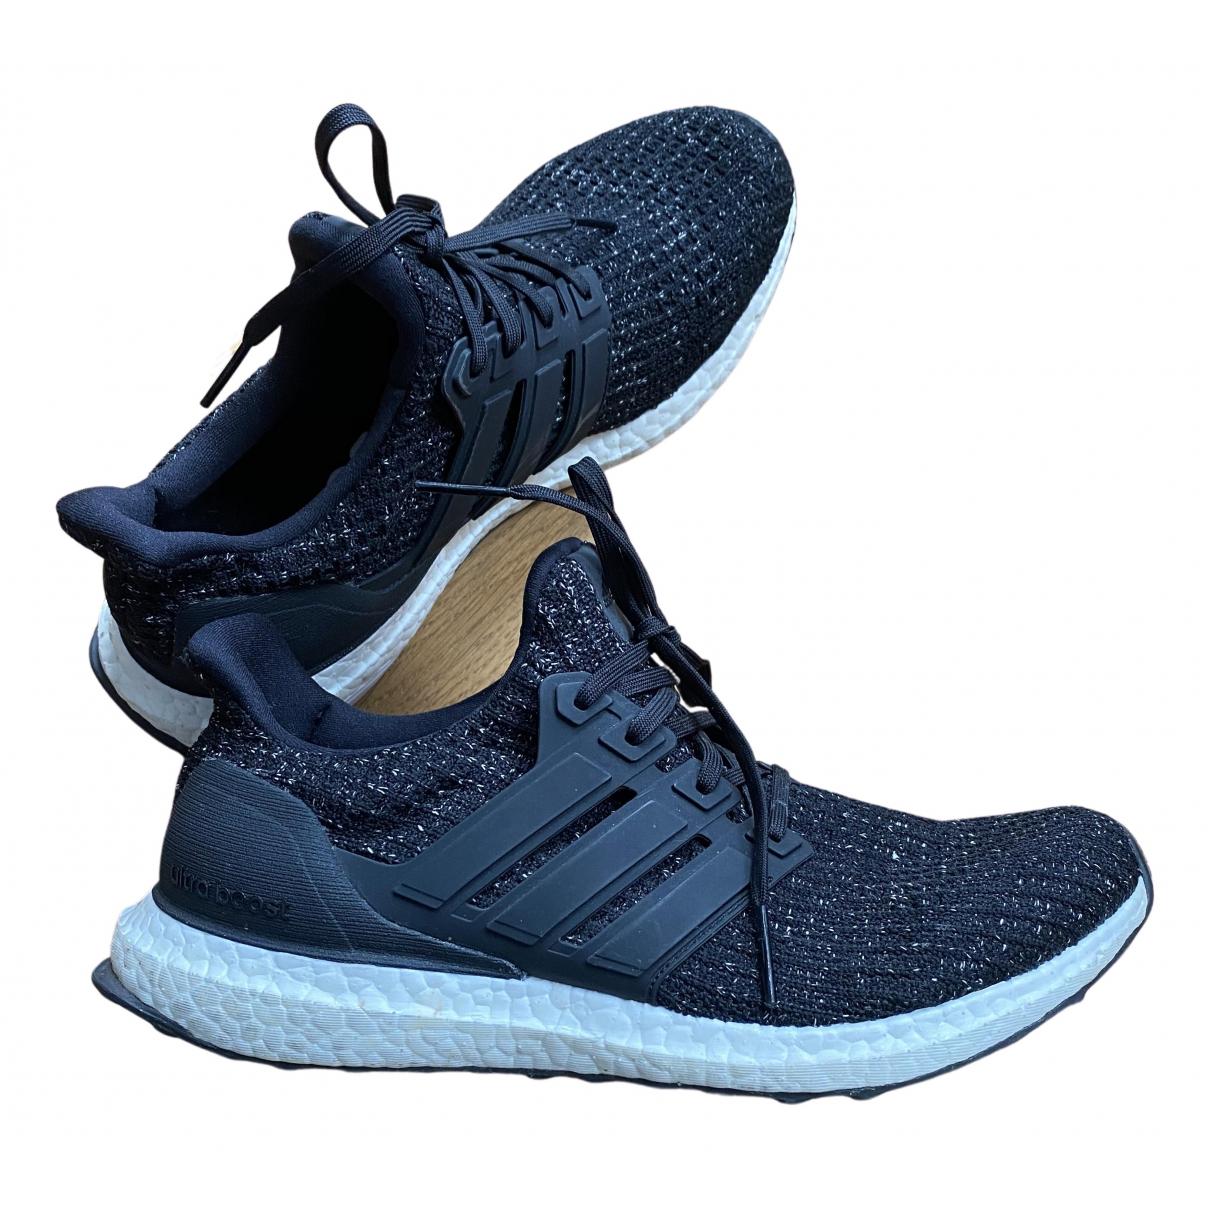 Adidas Ultraboost Anthracite Cloth Trainers for Women 7 UK